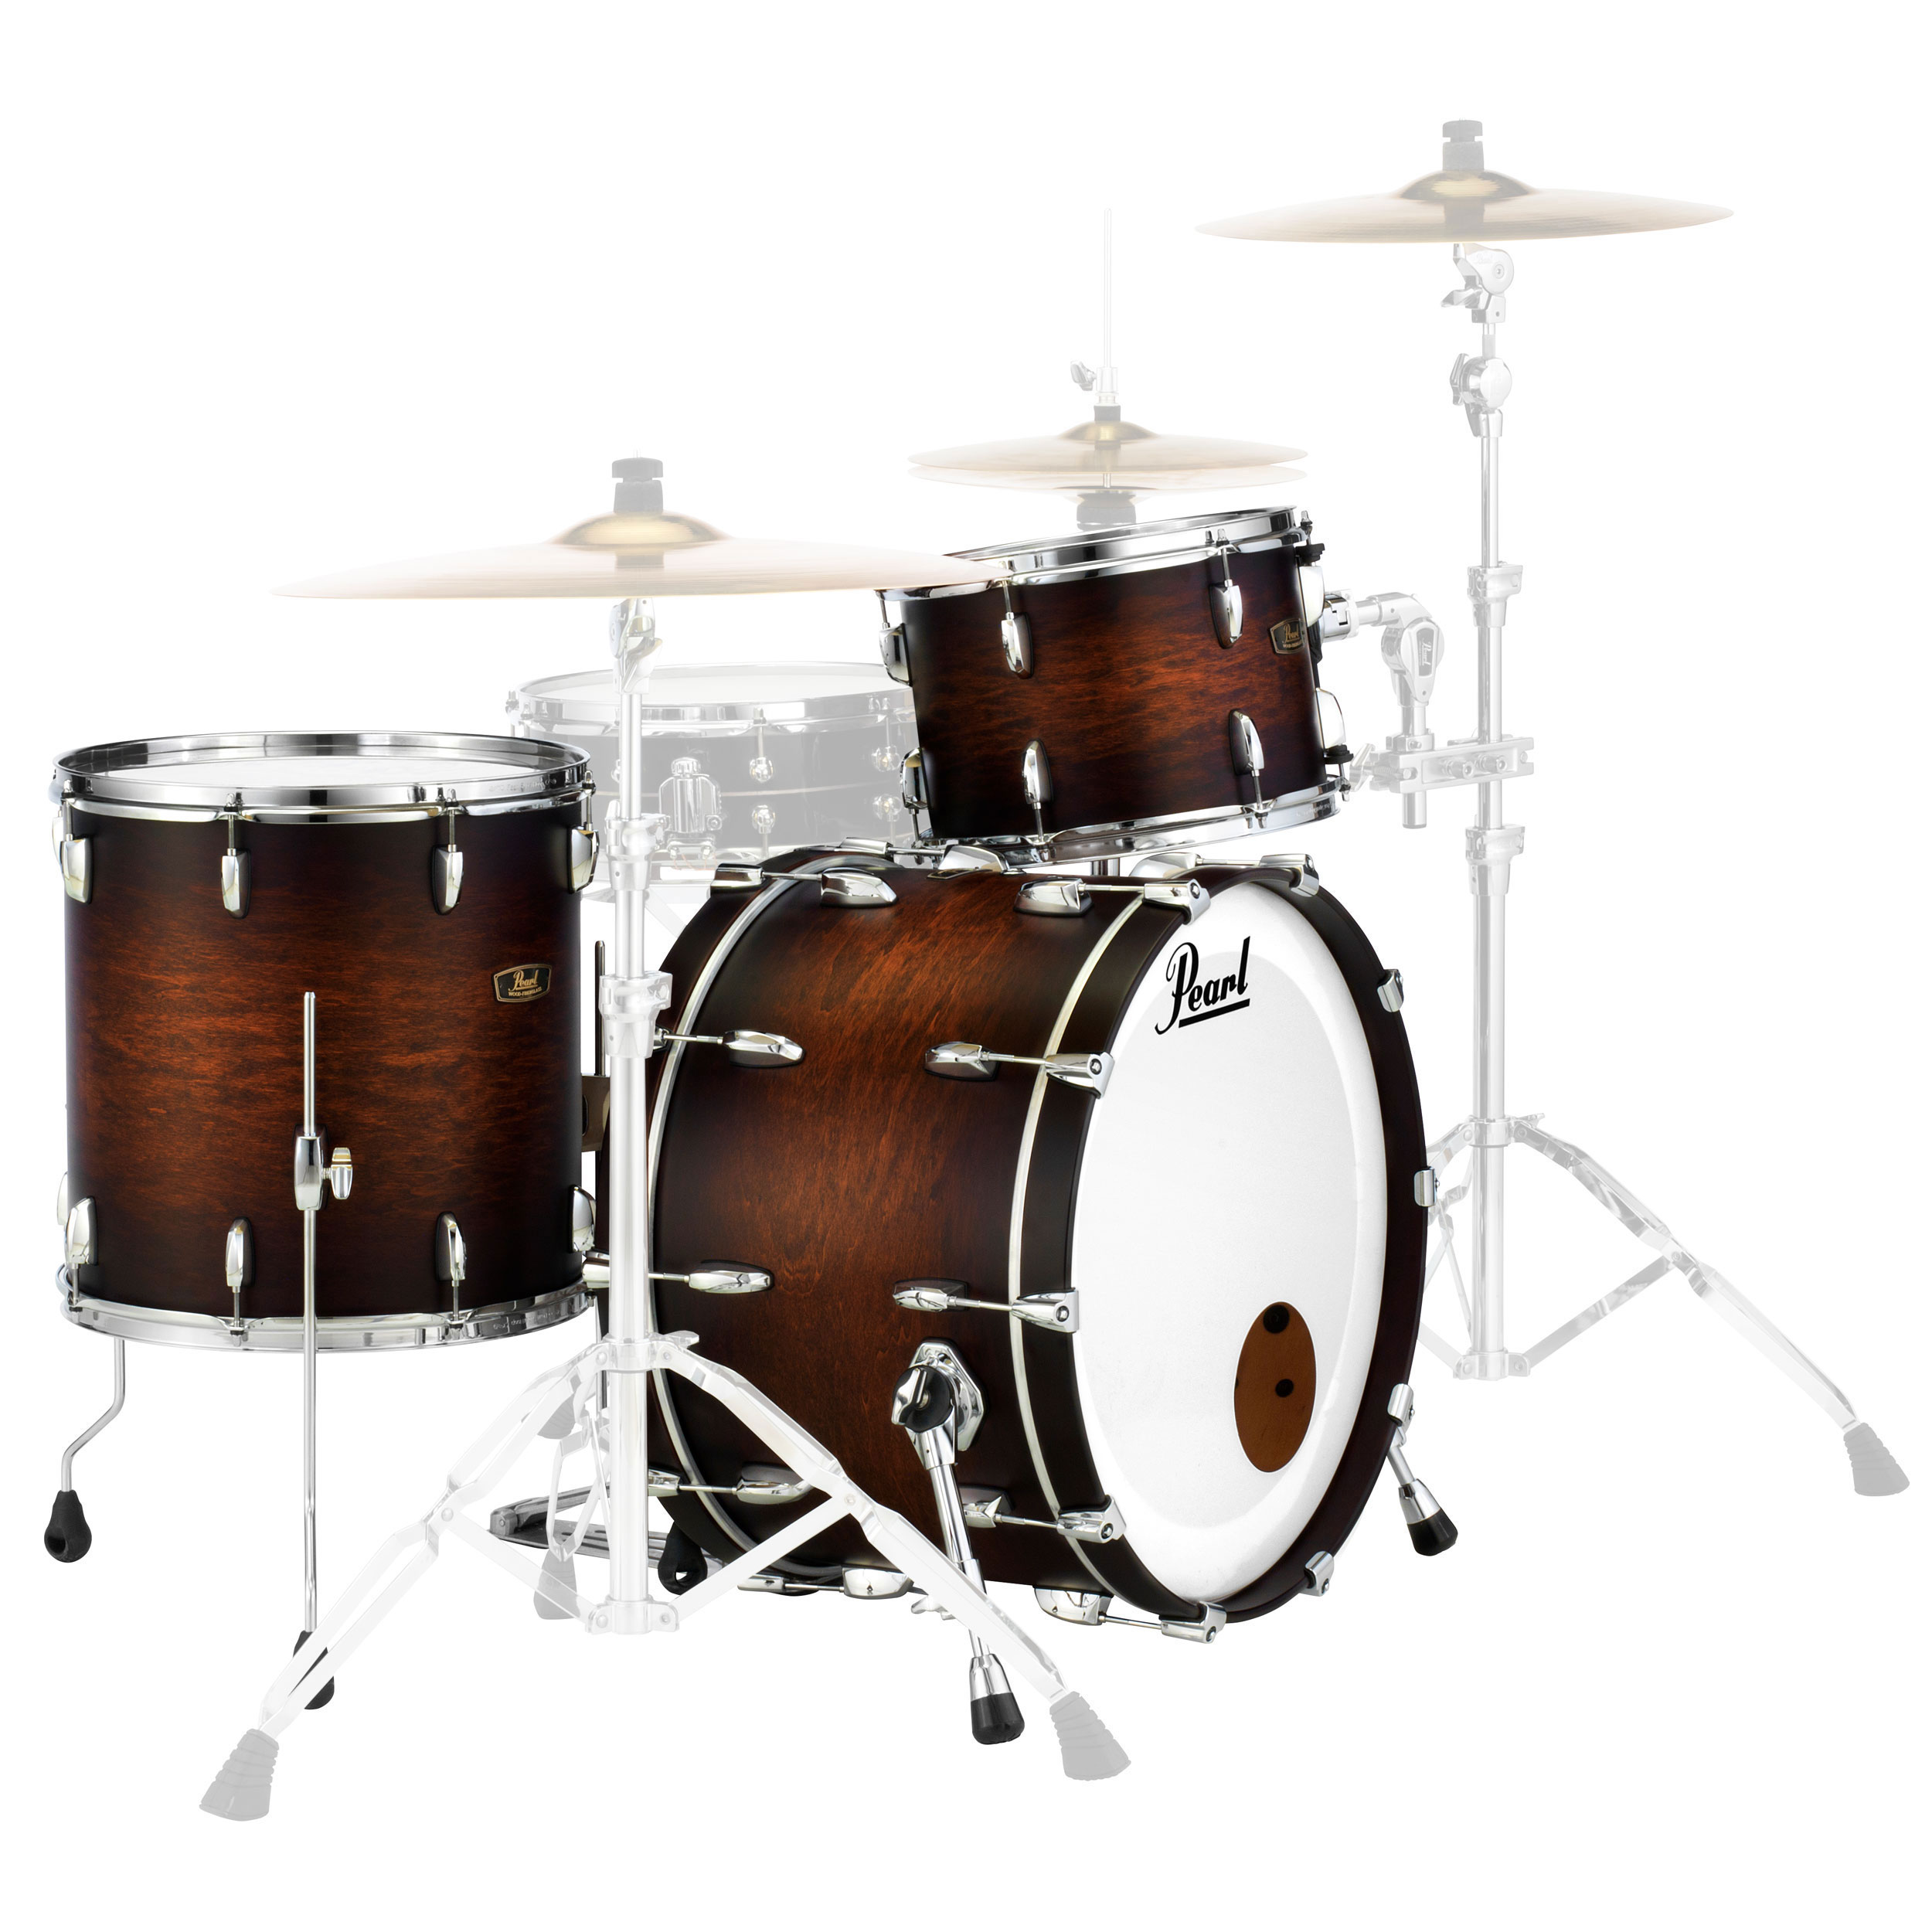 Pearl Wood Fiberglass 3 Pc Drum Set Shell Pack  22  Bass  13 16     Alternate Image for Pearl Wood Fiberglass 3 Piece Drum Set Shell Pack  22